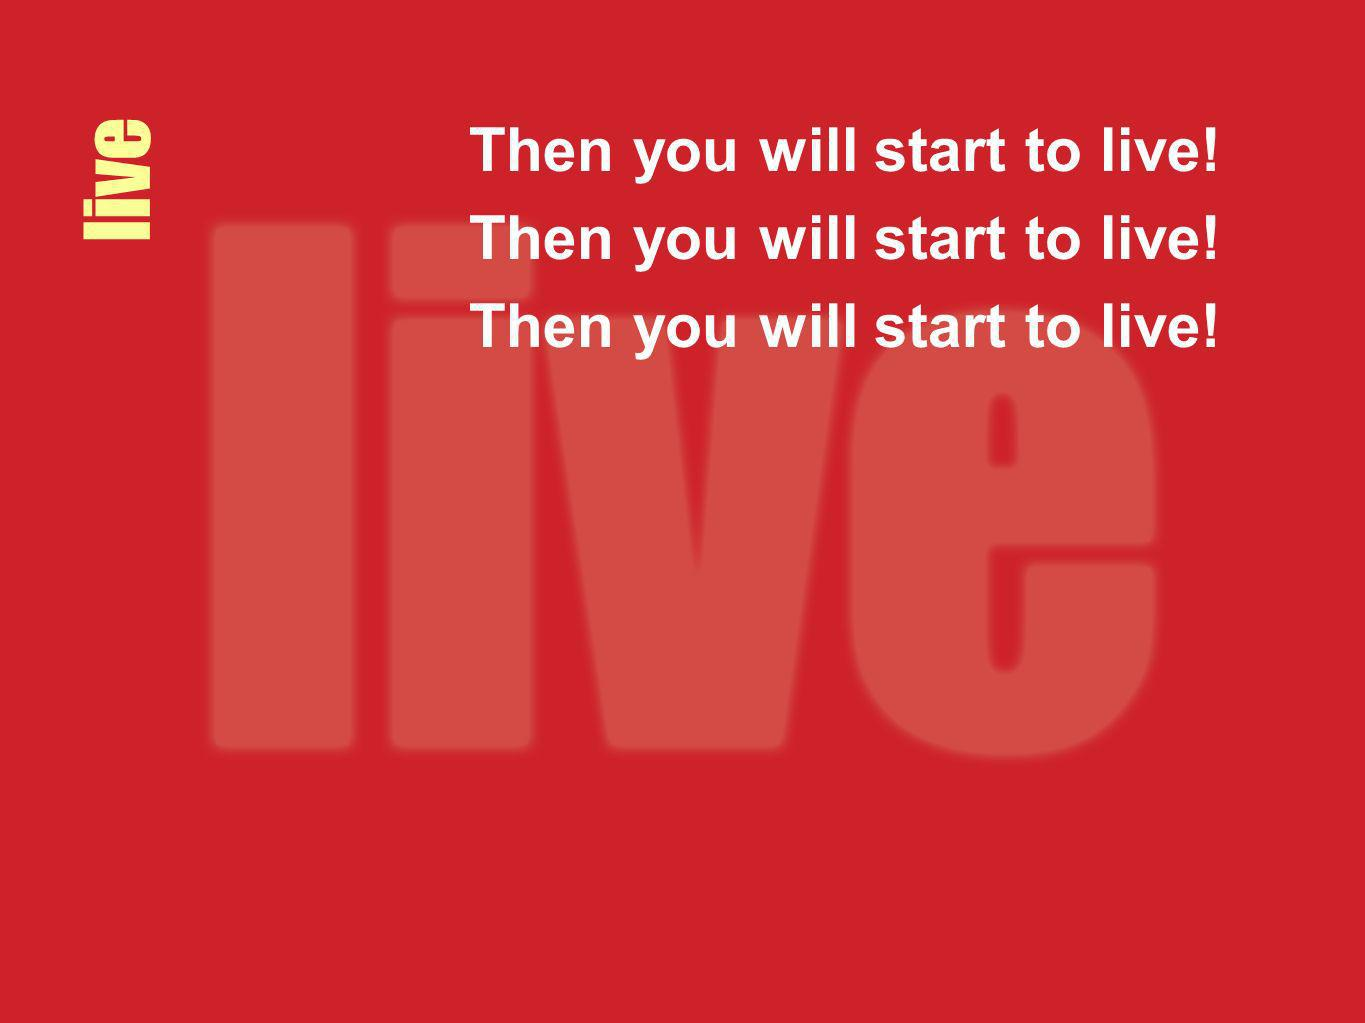 live Then you will start to live!